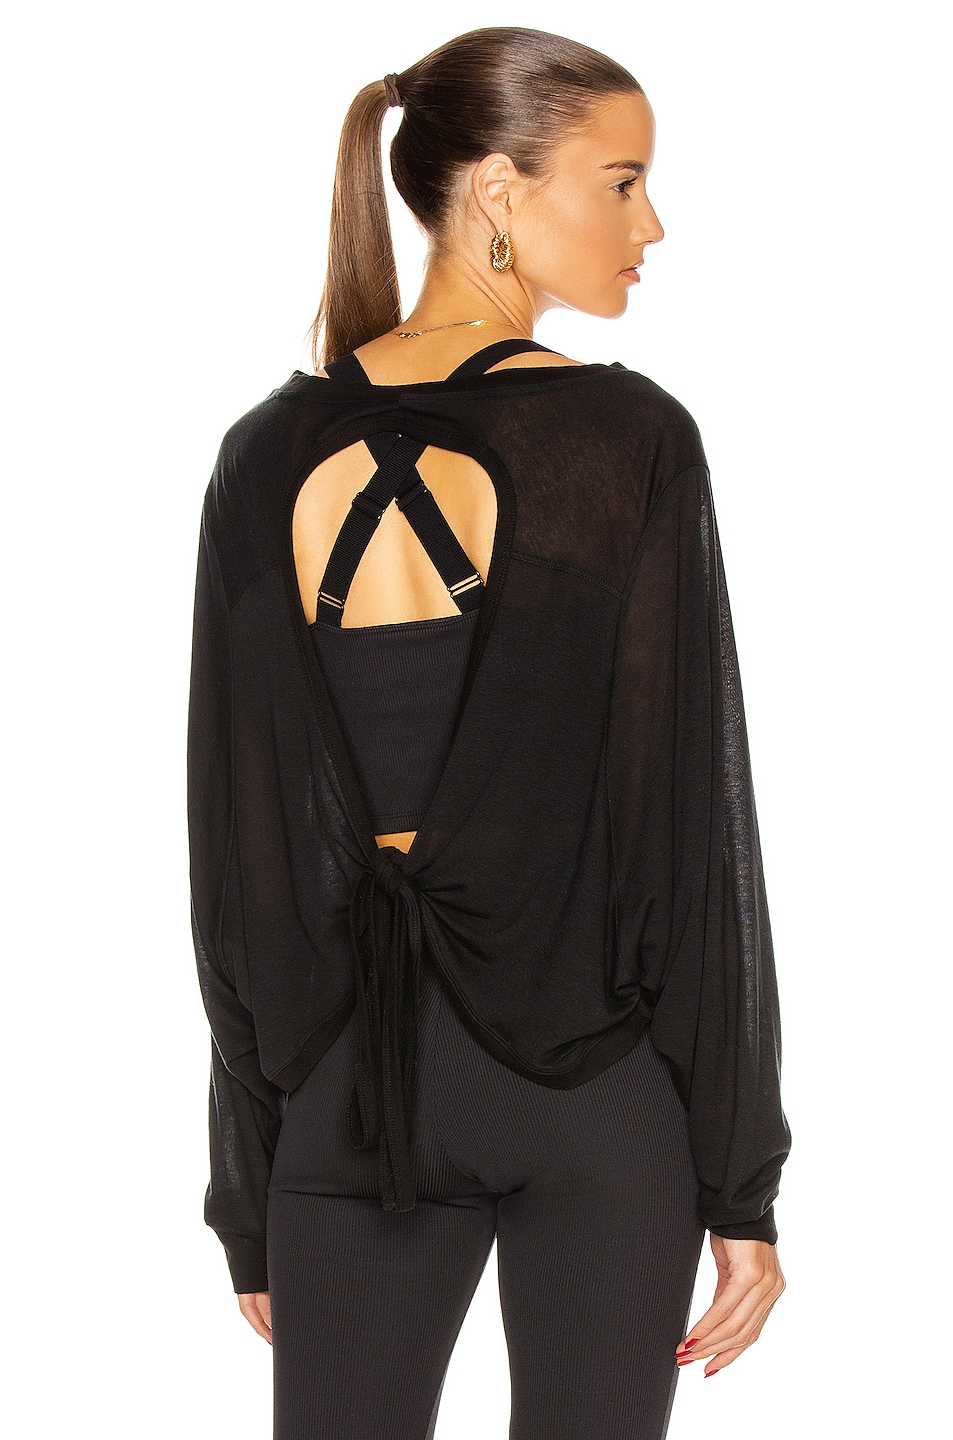 Image 1 of Nylora Valerio Top in Black